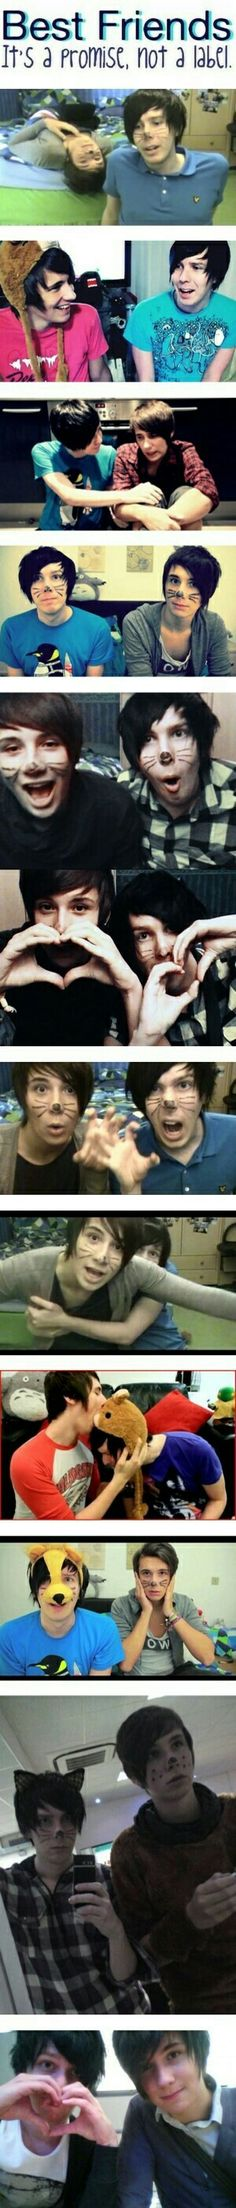 Best friends: Its a promise, not a label, Dan, Phil, text, timeline; Dan and Phil